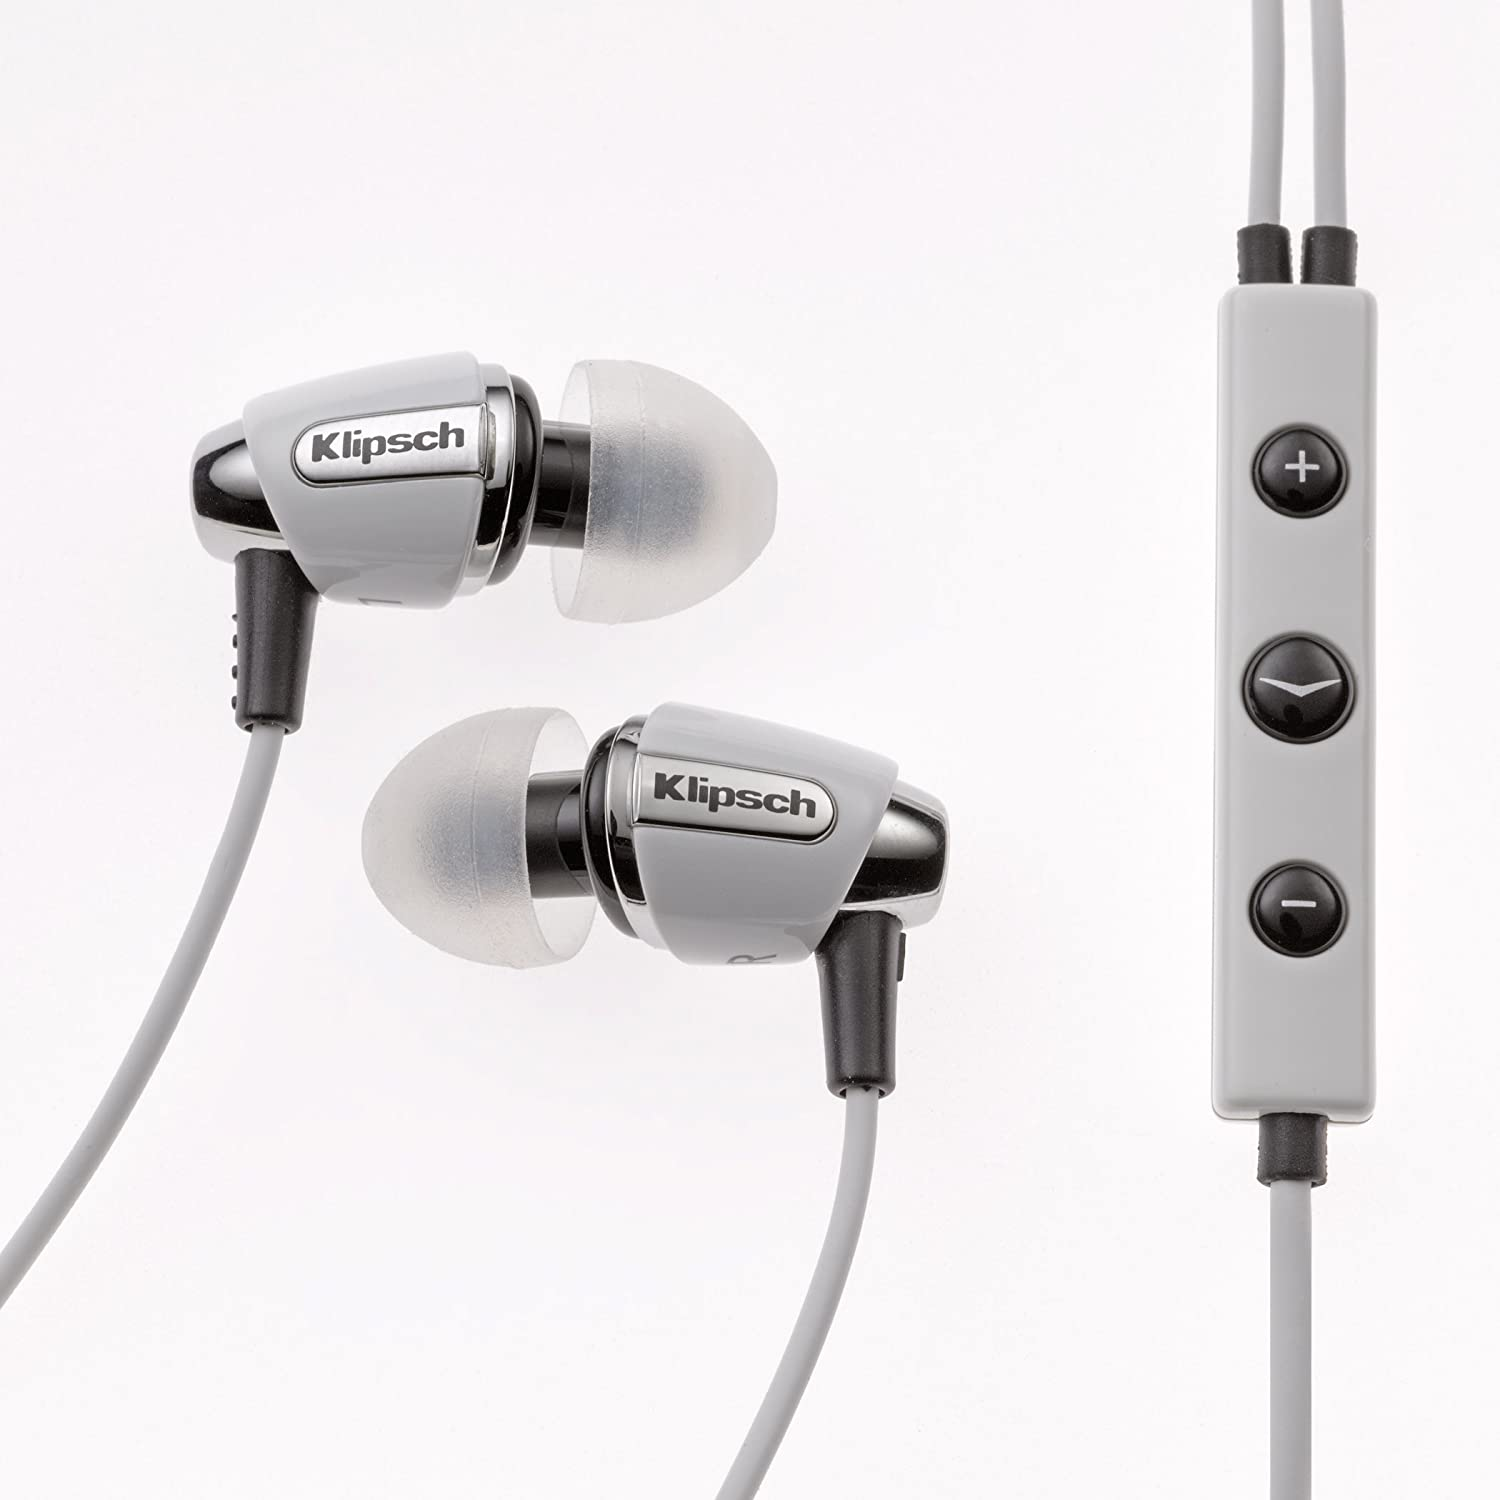 Superior Buy Klipsch Image S4i In Ear Headphone With Mic (Sleek Black) Online At